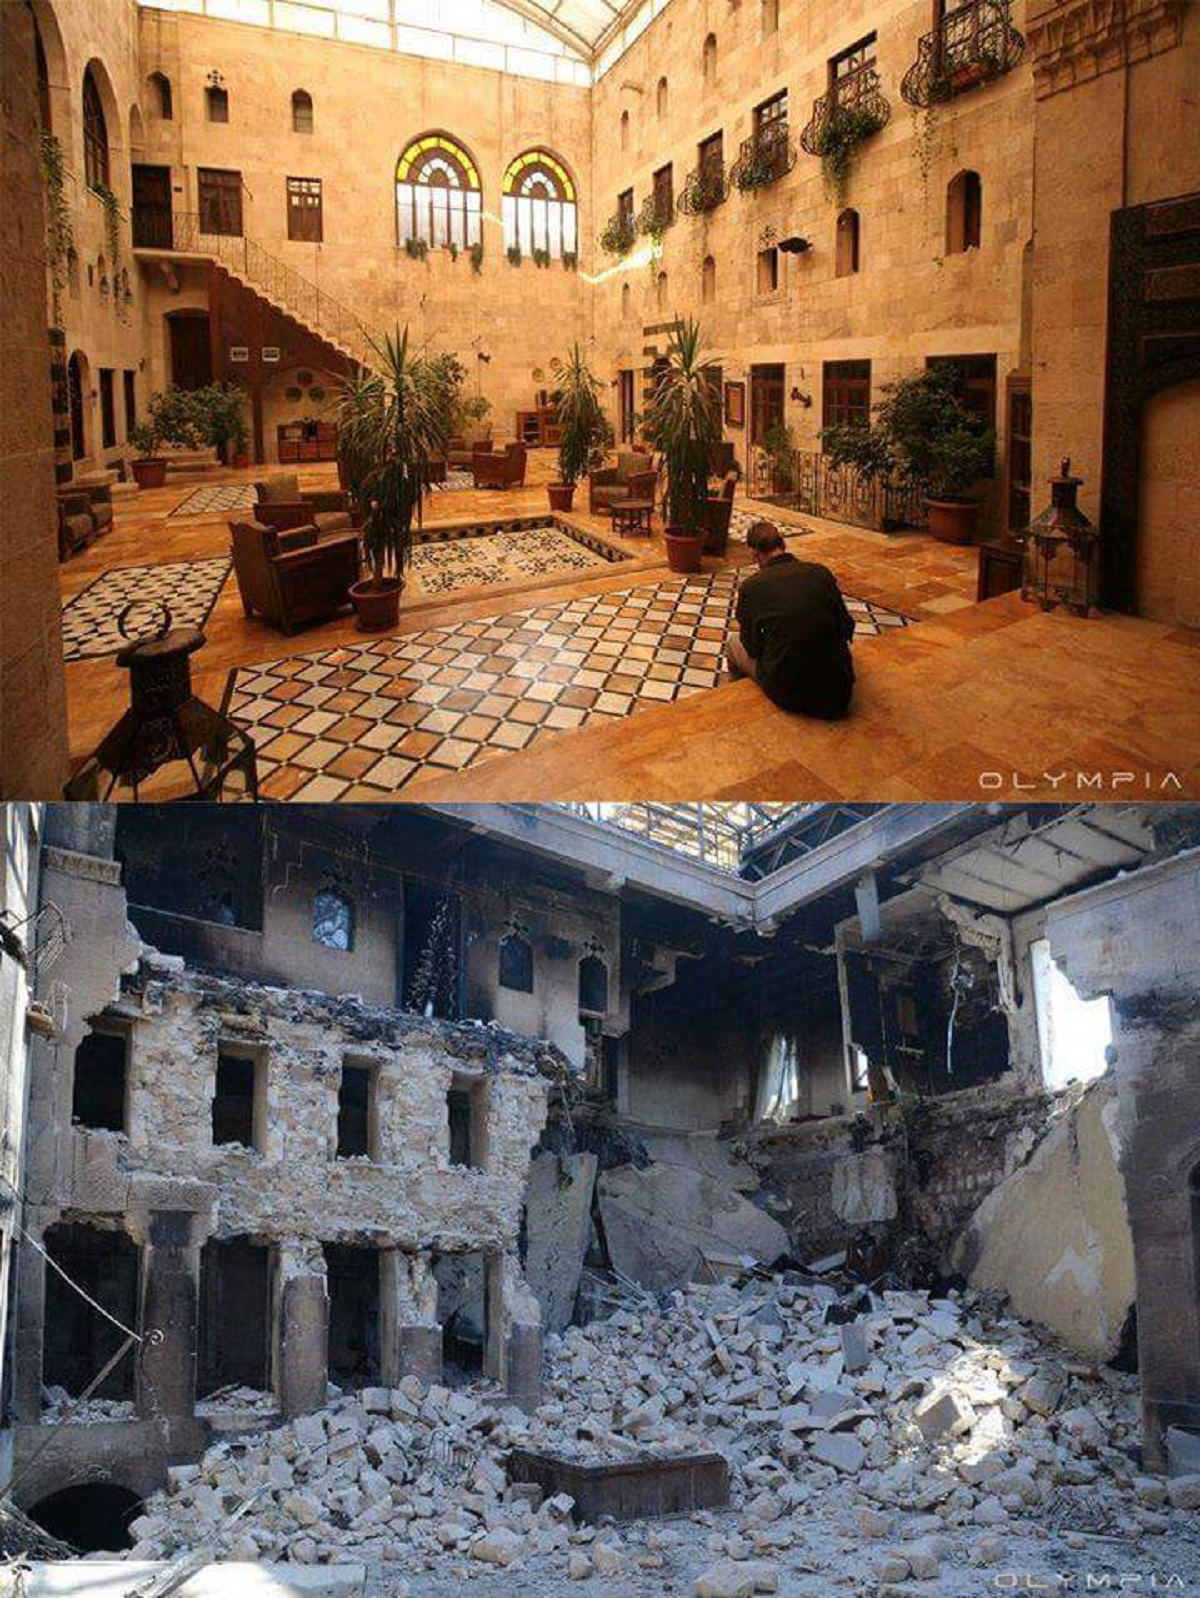 This is a typical Aleppo house with a courtyard. Here was before a well-visited restaurant. This houses were destroyed around 2012.